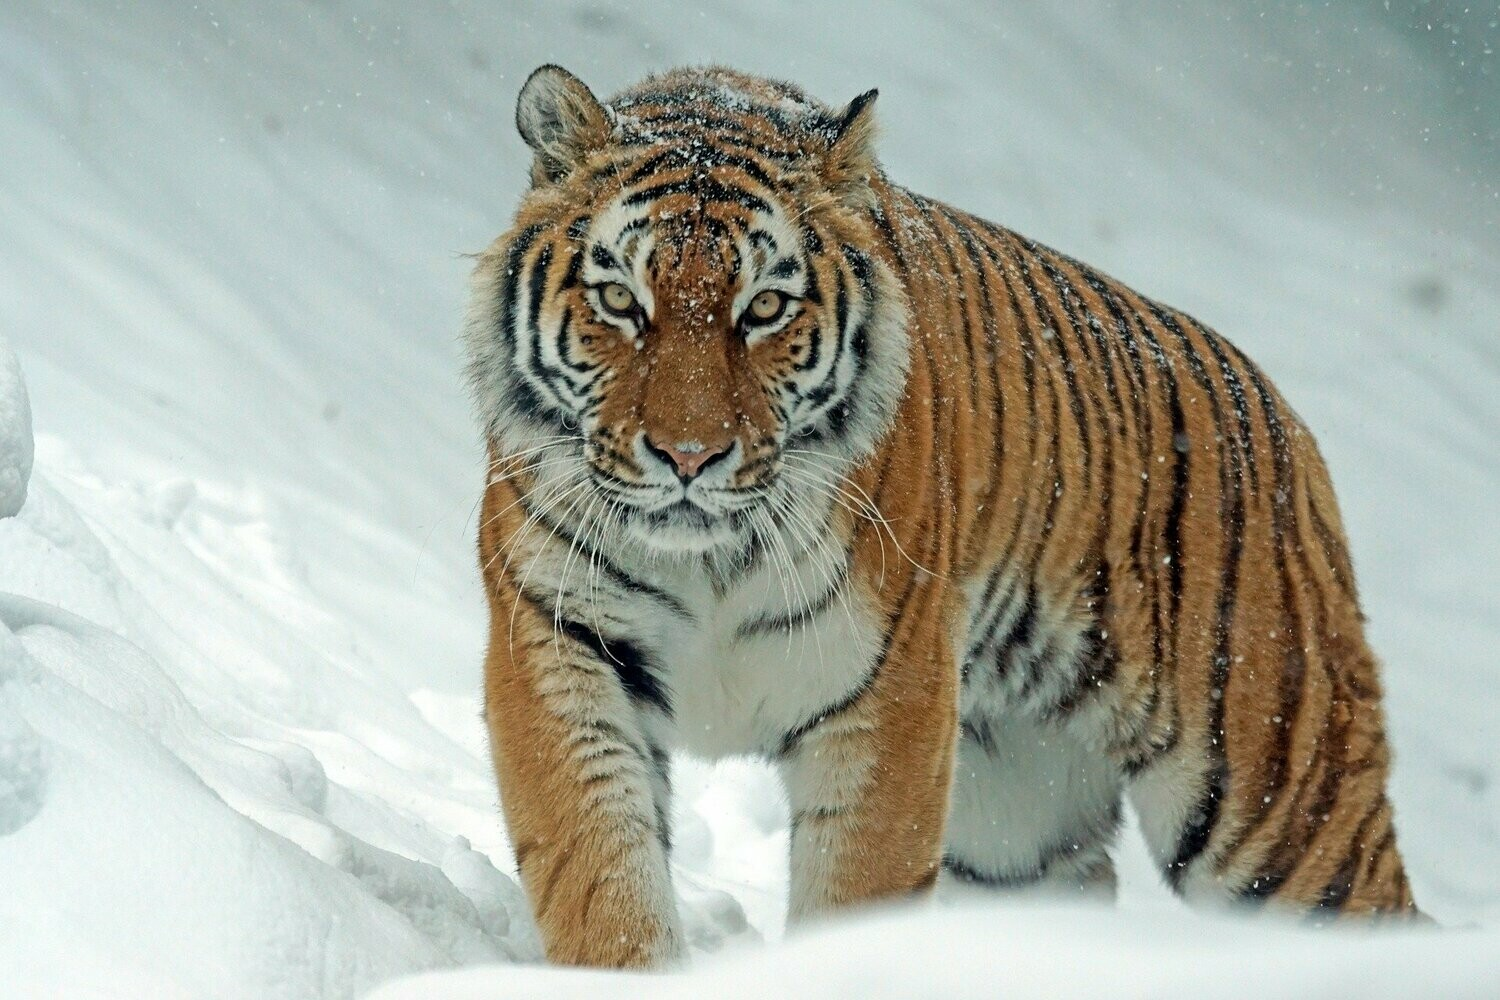 Tiger In The Snow - Full Drill Diamond Painting - Specially ordered for you. Delivery is approximately 4 - 6 weeks.